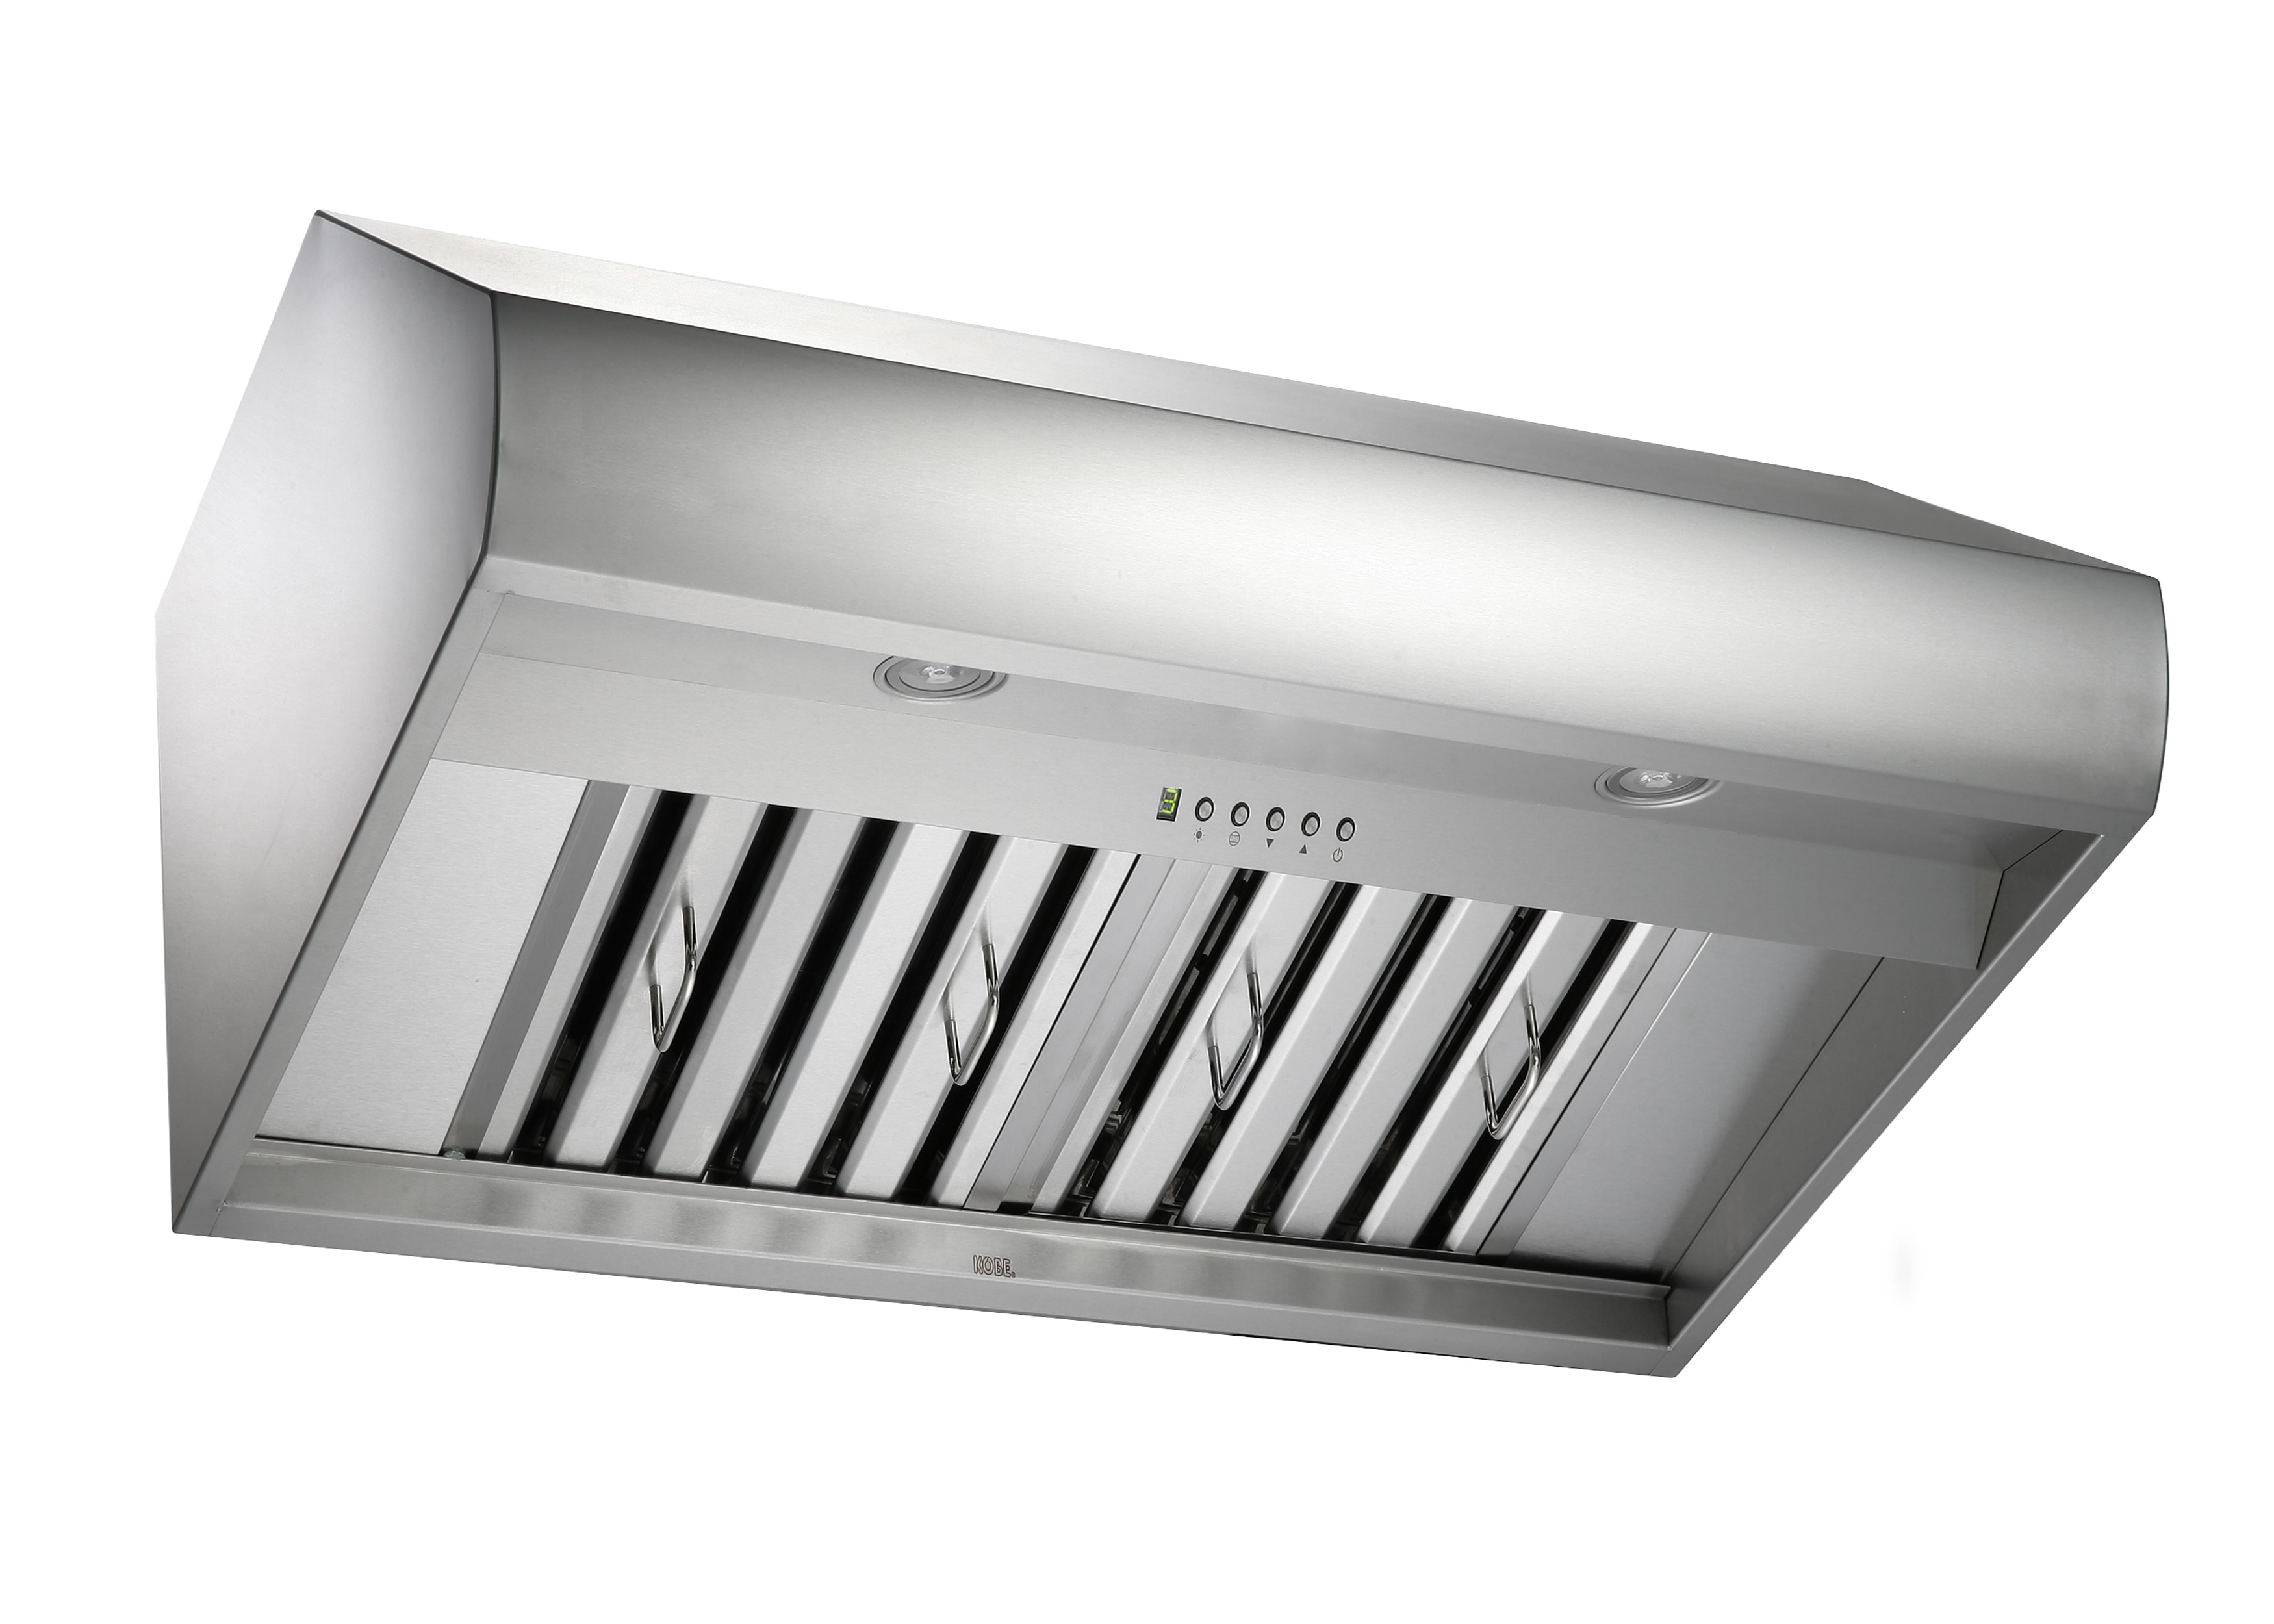 "KOBE Premium CH-77 SQB-1 Series, 30"" Under Cabinet, 6-Speed, 760 CFM, LED Lights, Baffle Filters, QuietMode, ECO Mode"